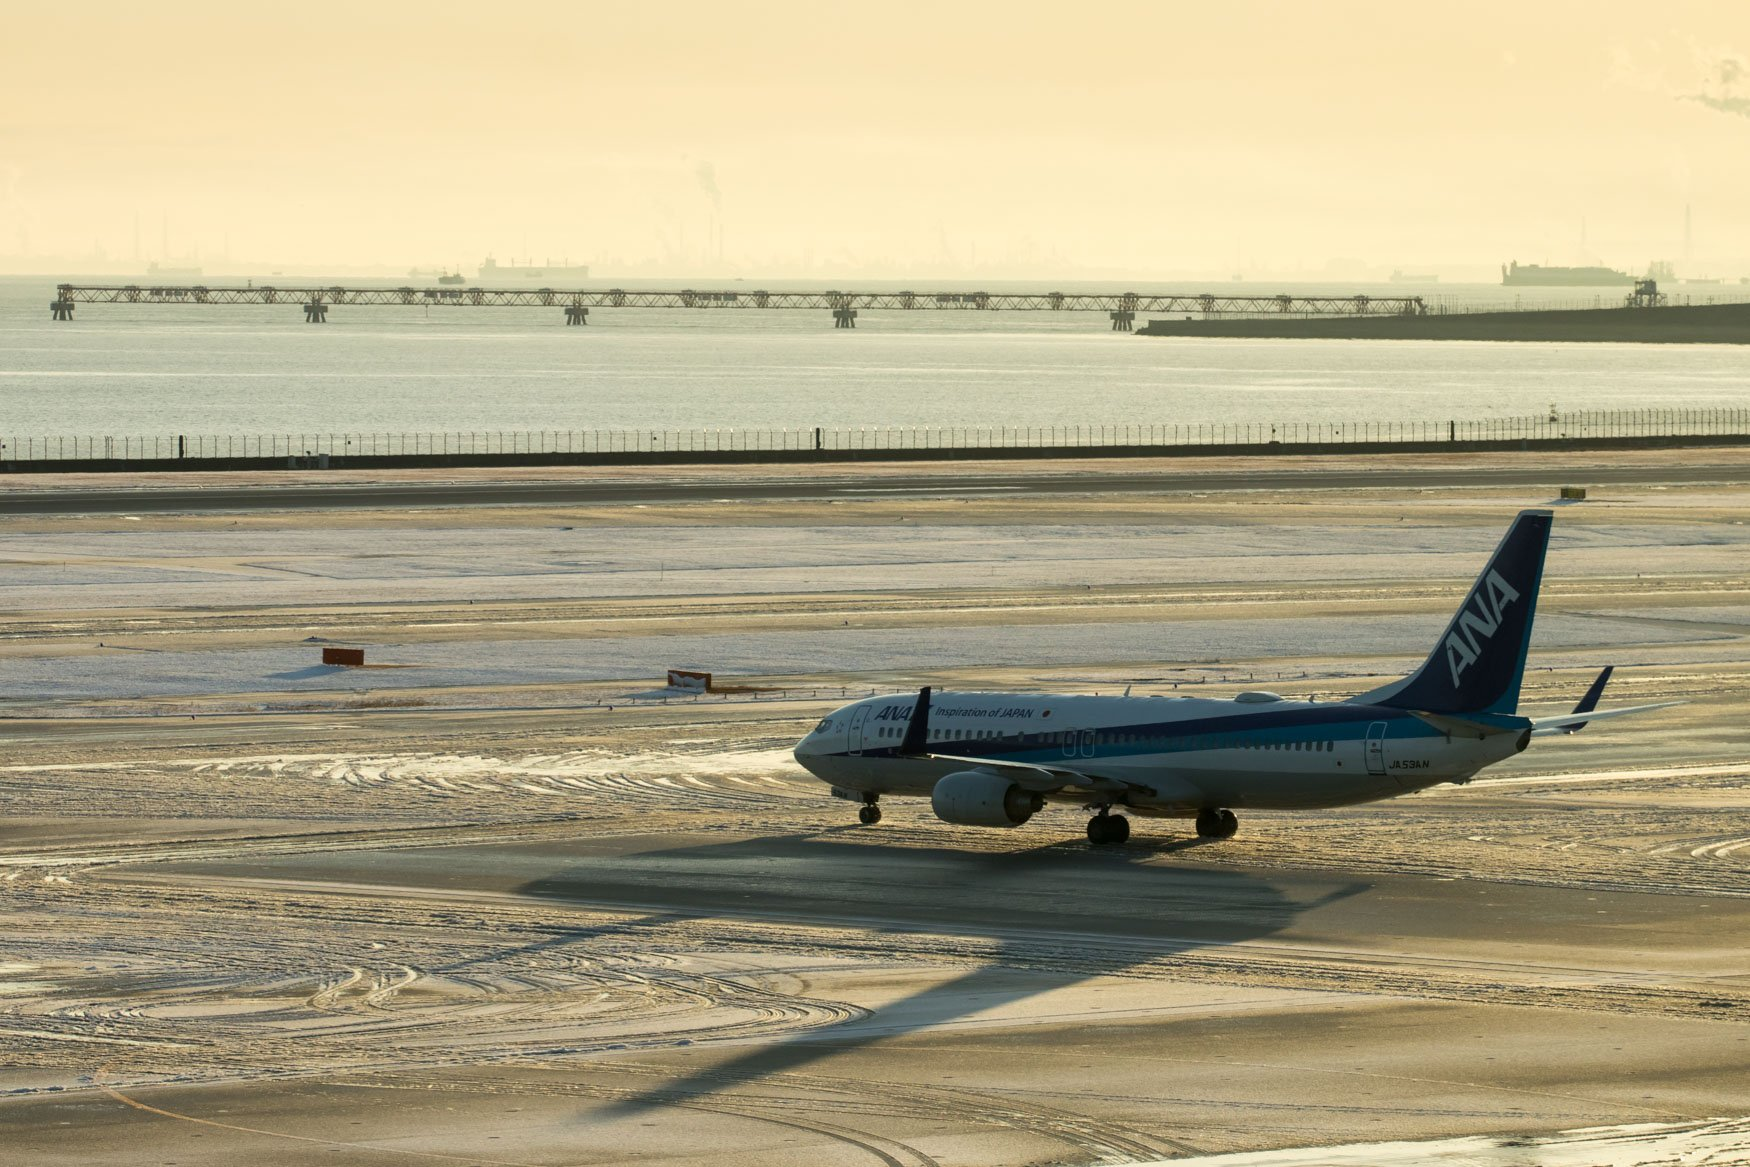 ANA 737-800 Taxiing for Departure